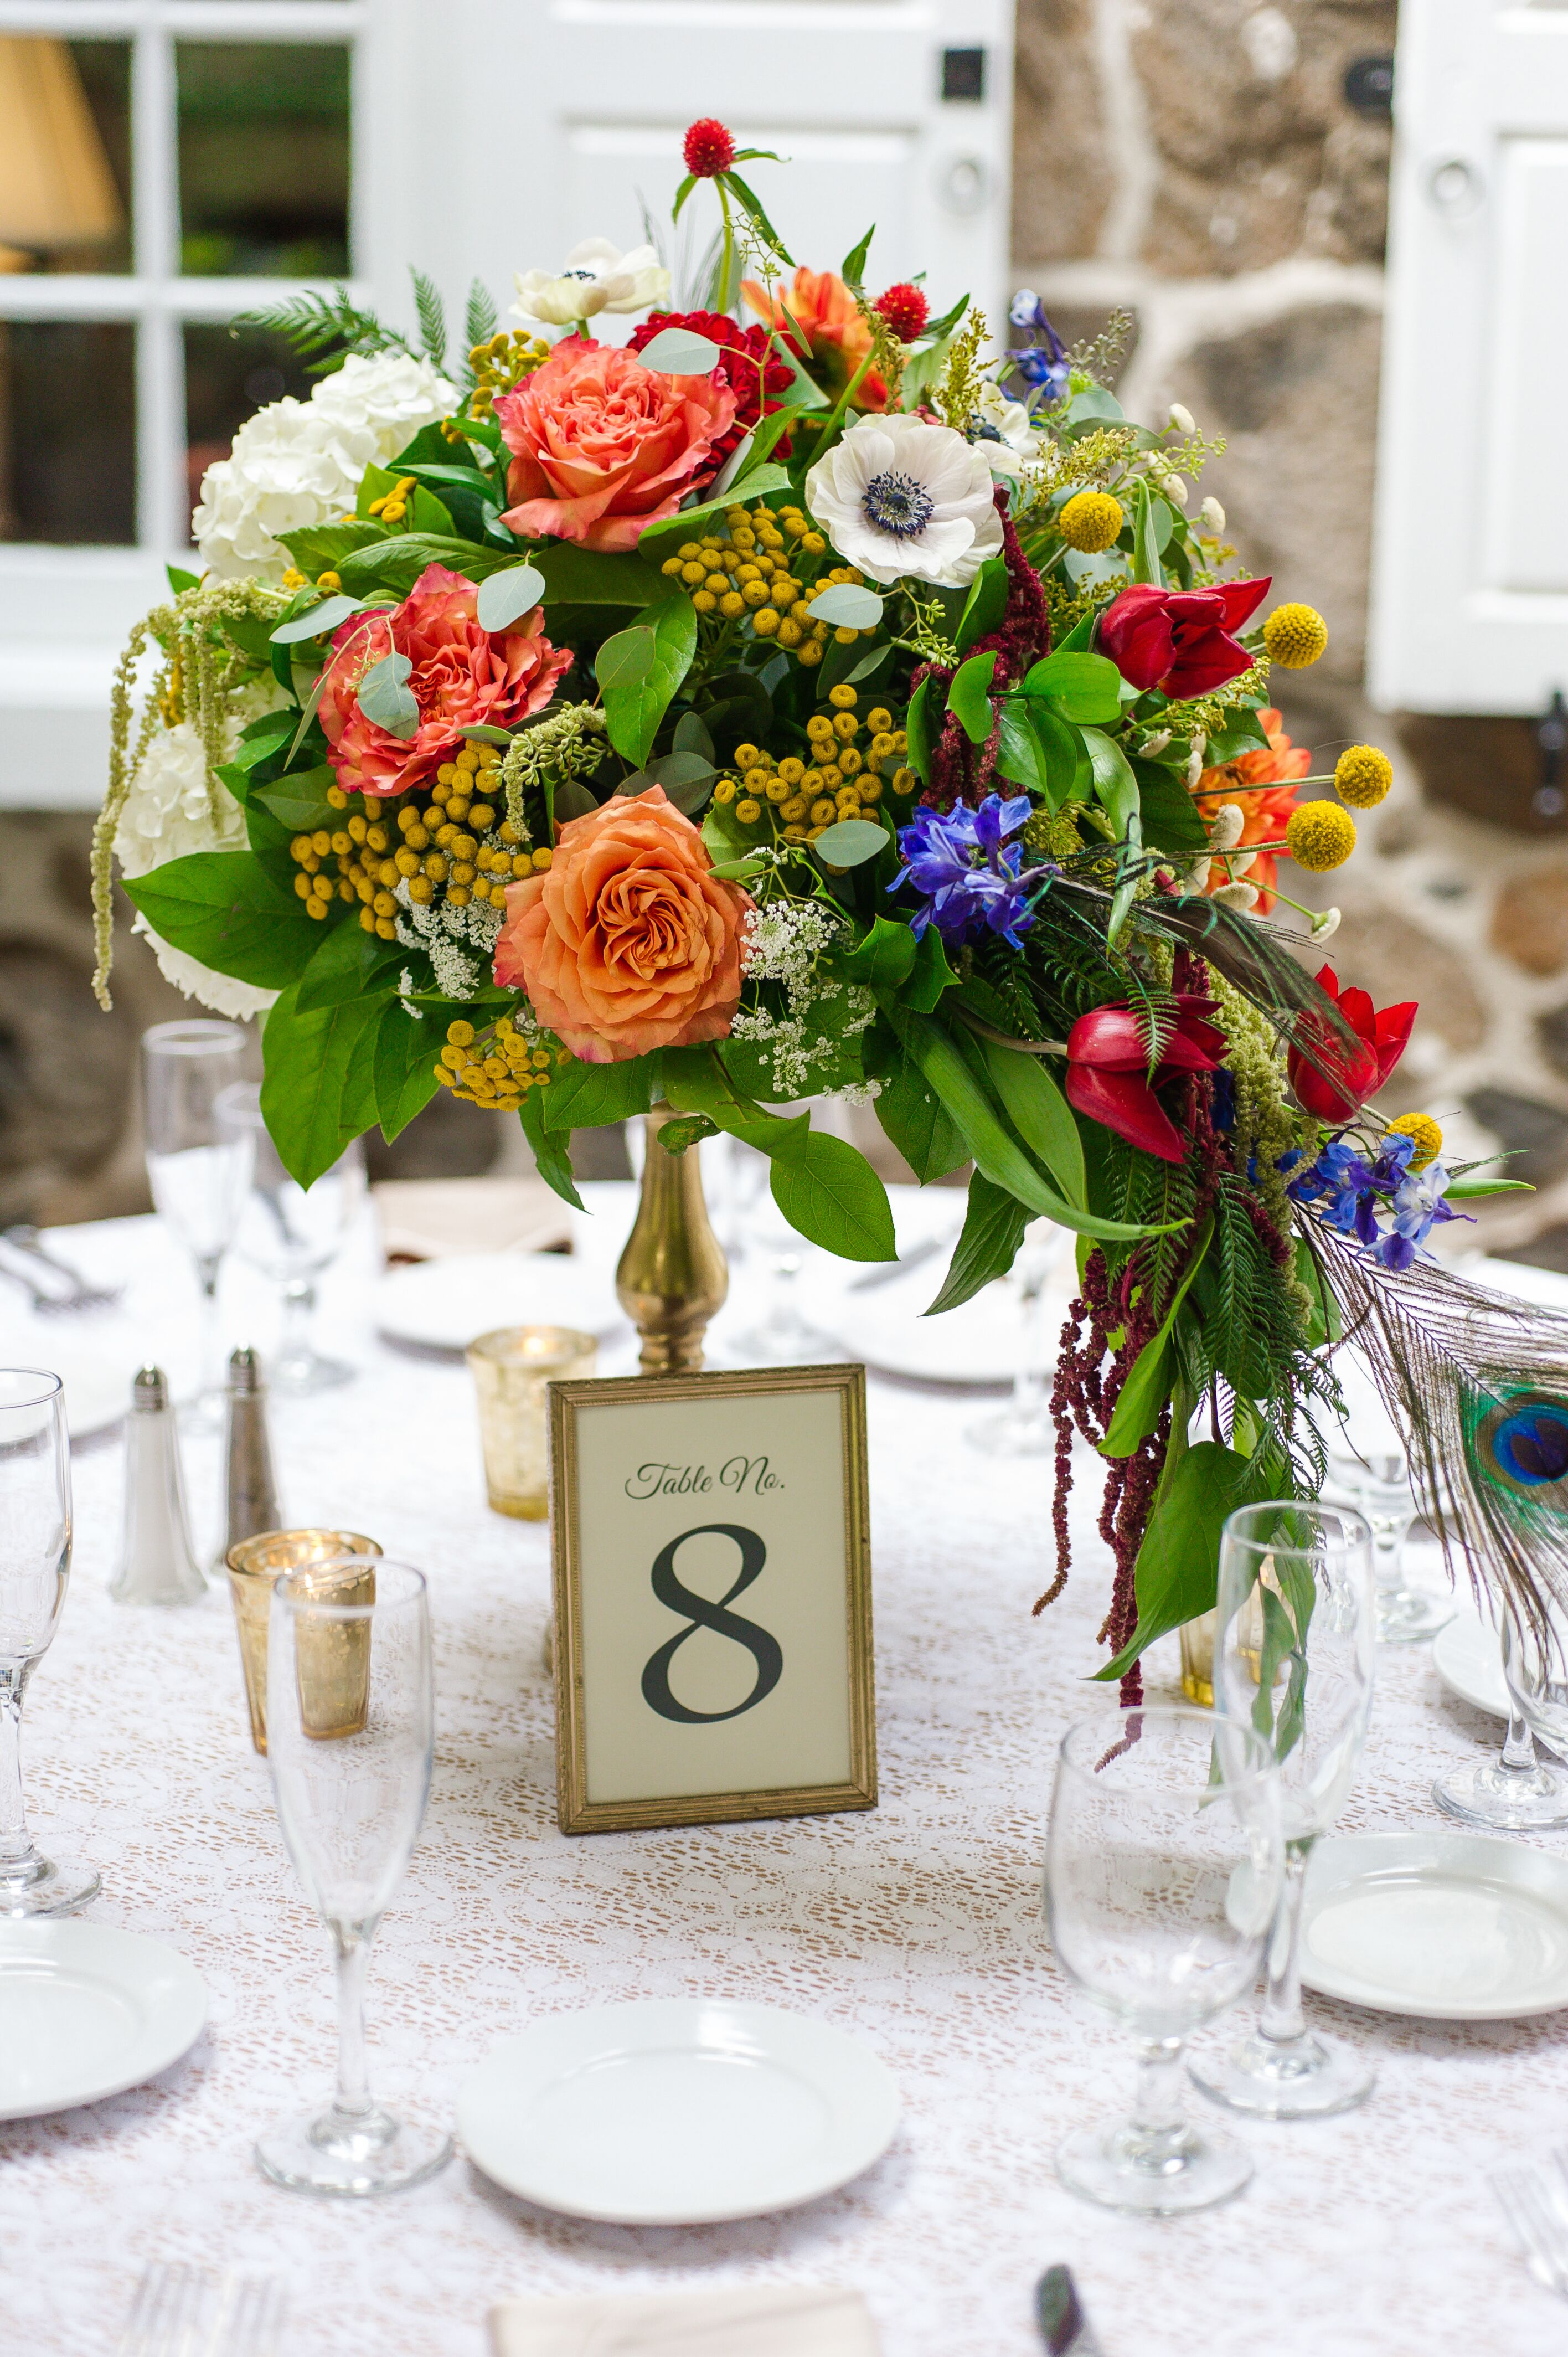 Table centerpiece overflowing with colorful blooms